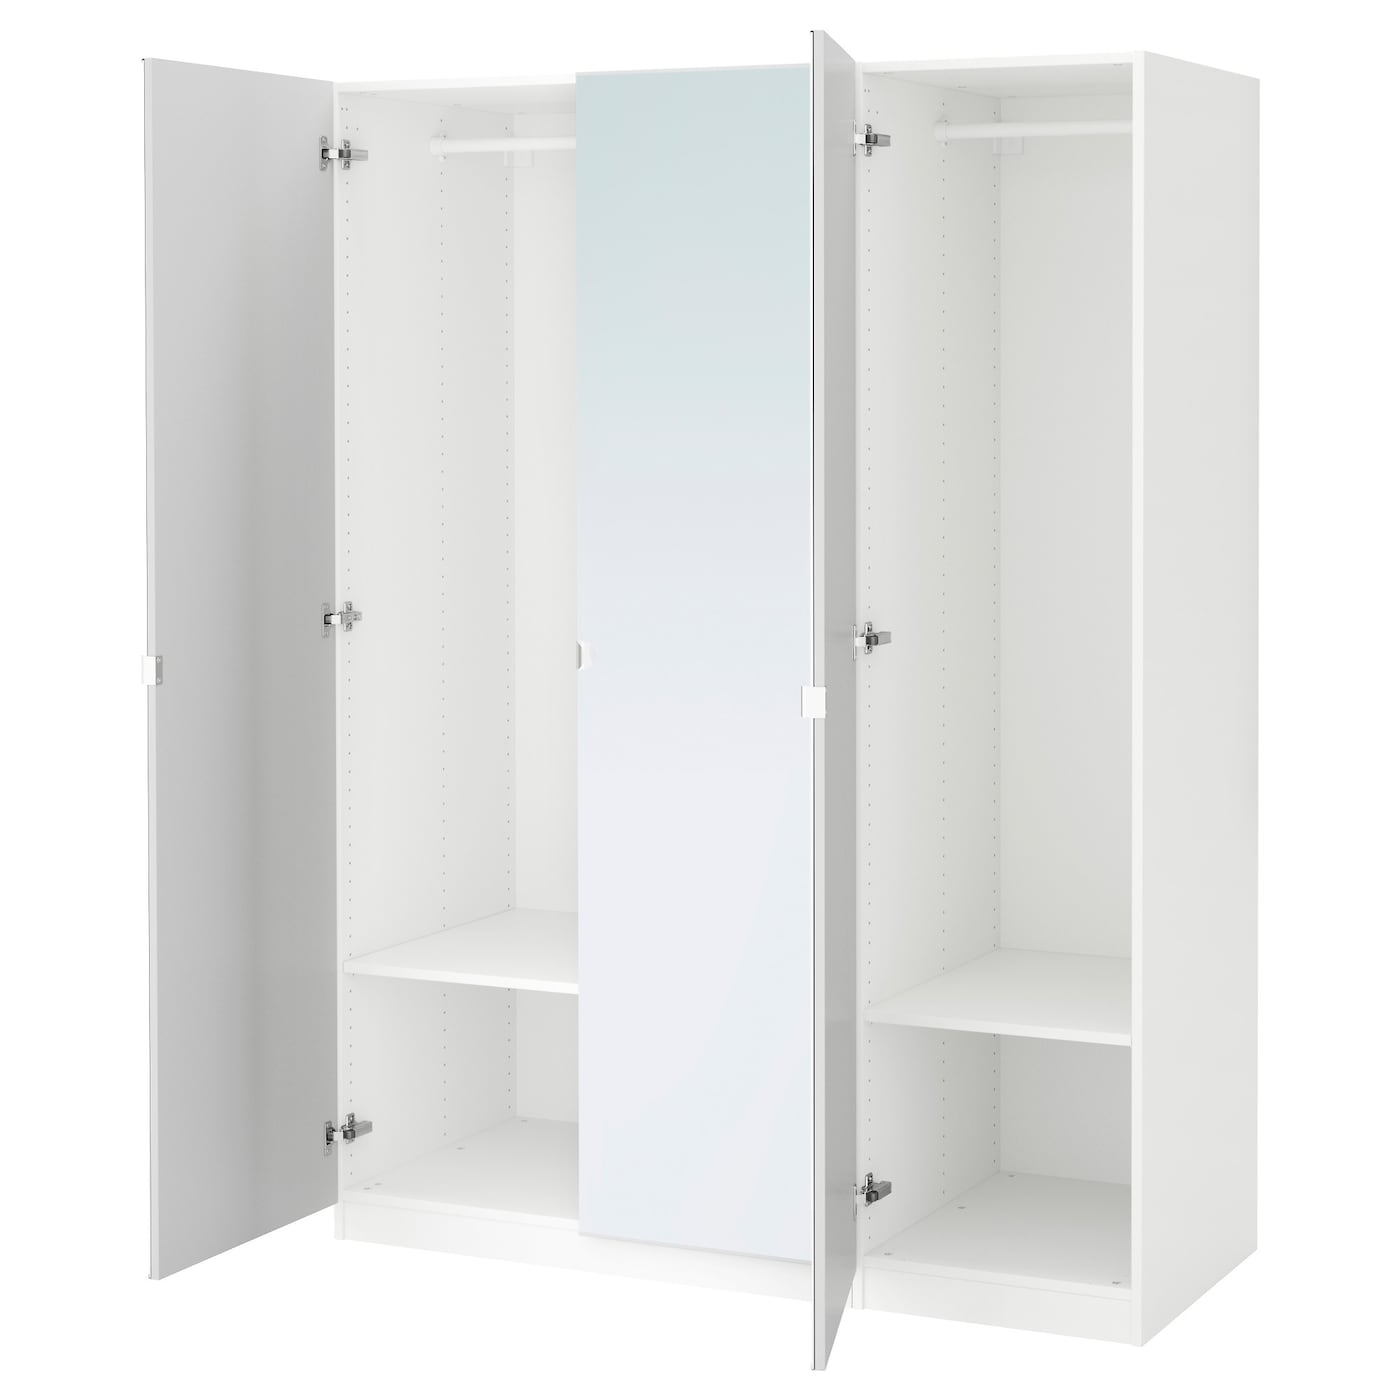 pax wardrobe white vikedal mirror glass 150x60x201 cm ikea. Black Bedroom Furniture Sets. Home Design Ideas